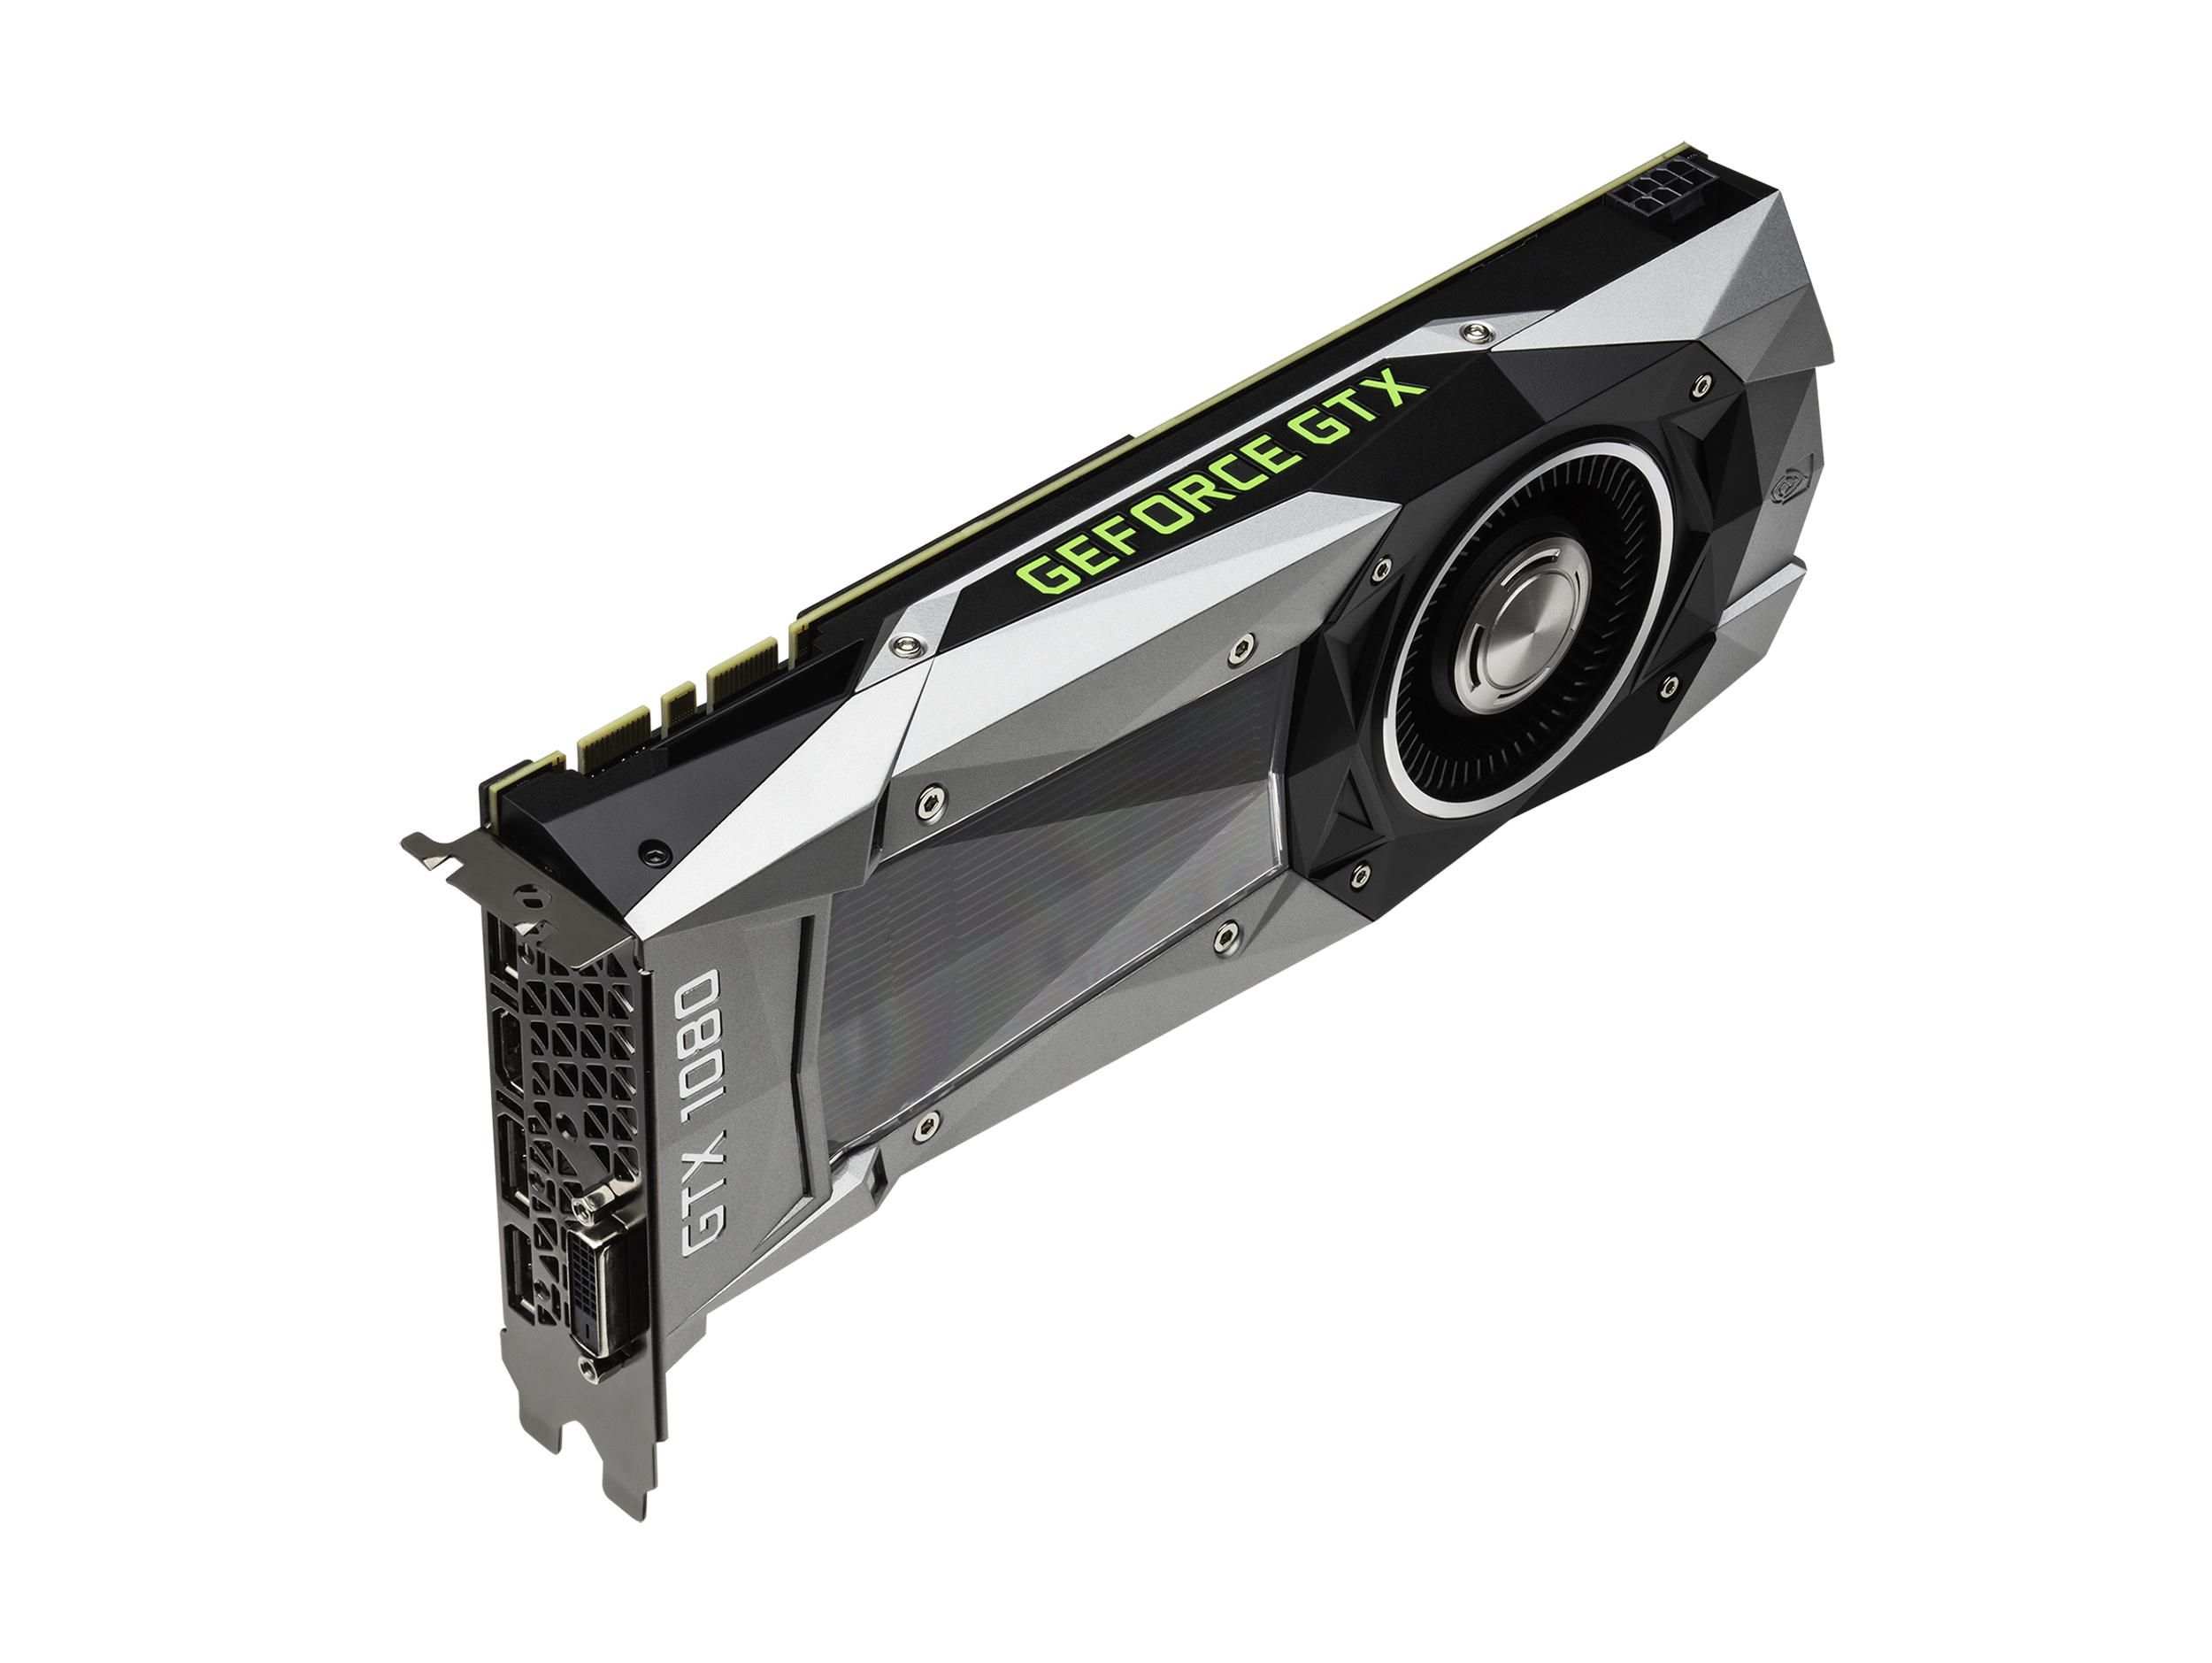 nvidia-geforce-gtx-1080-3QtrTopLeft-1